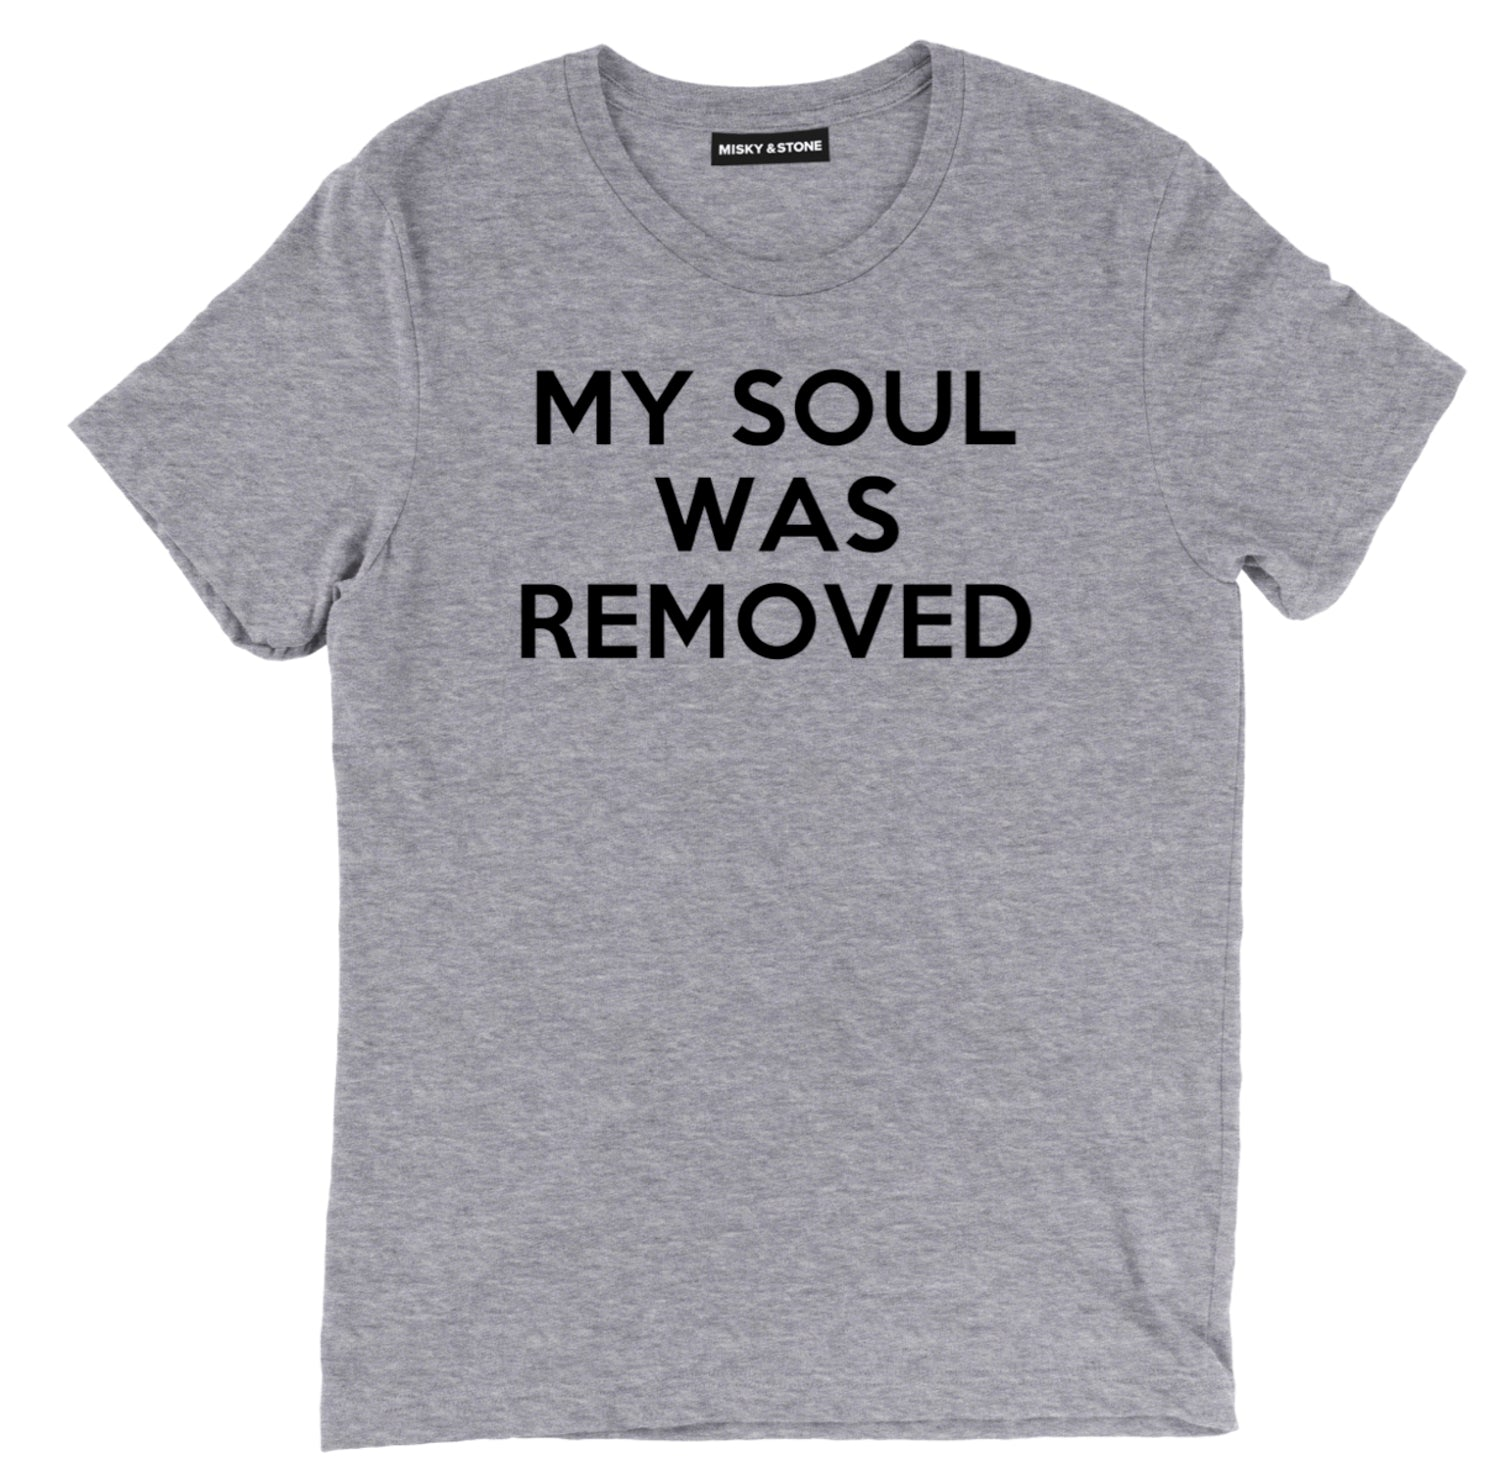 my soul was removed sarcastic tee shirts, my soul was removed sarcastic merch, my soul was removed sarcastic clothing, my soul was removed sarcastic apparel, my soul was removed sarcastic t shirt sayings, my soul was removed sarcastic t shirts quotes, funny sarcastic t shirts